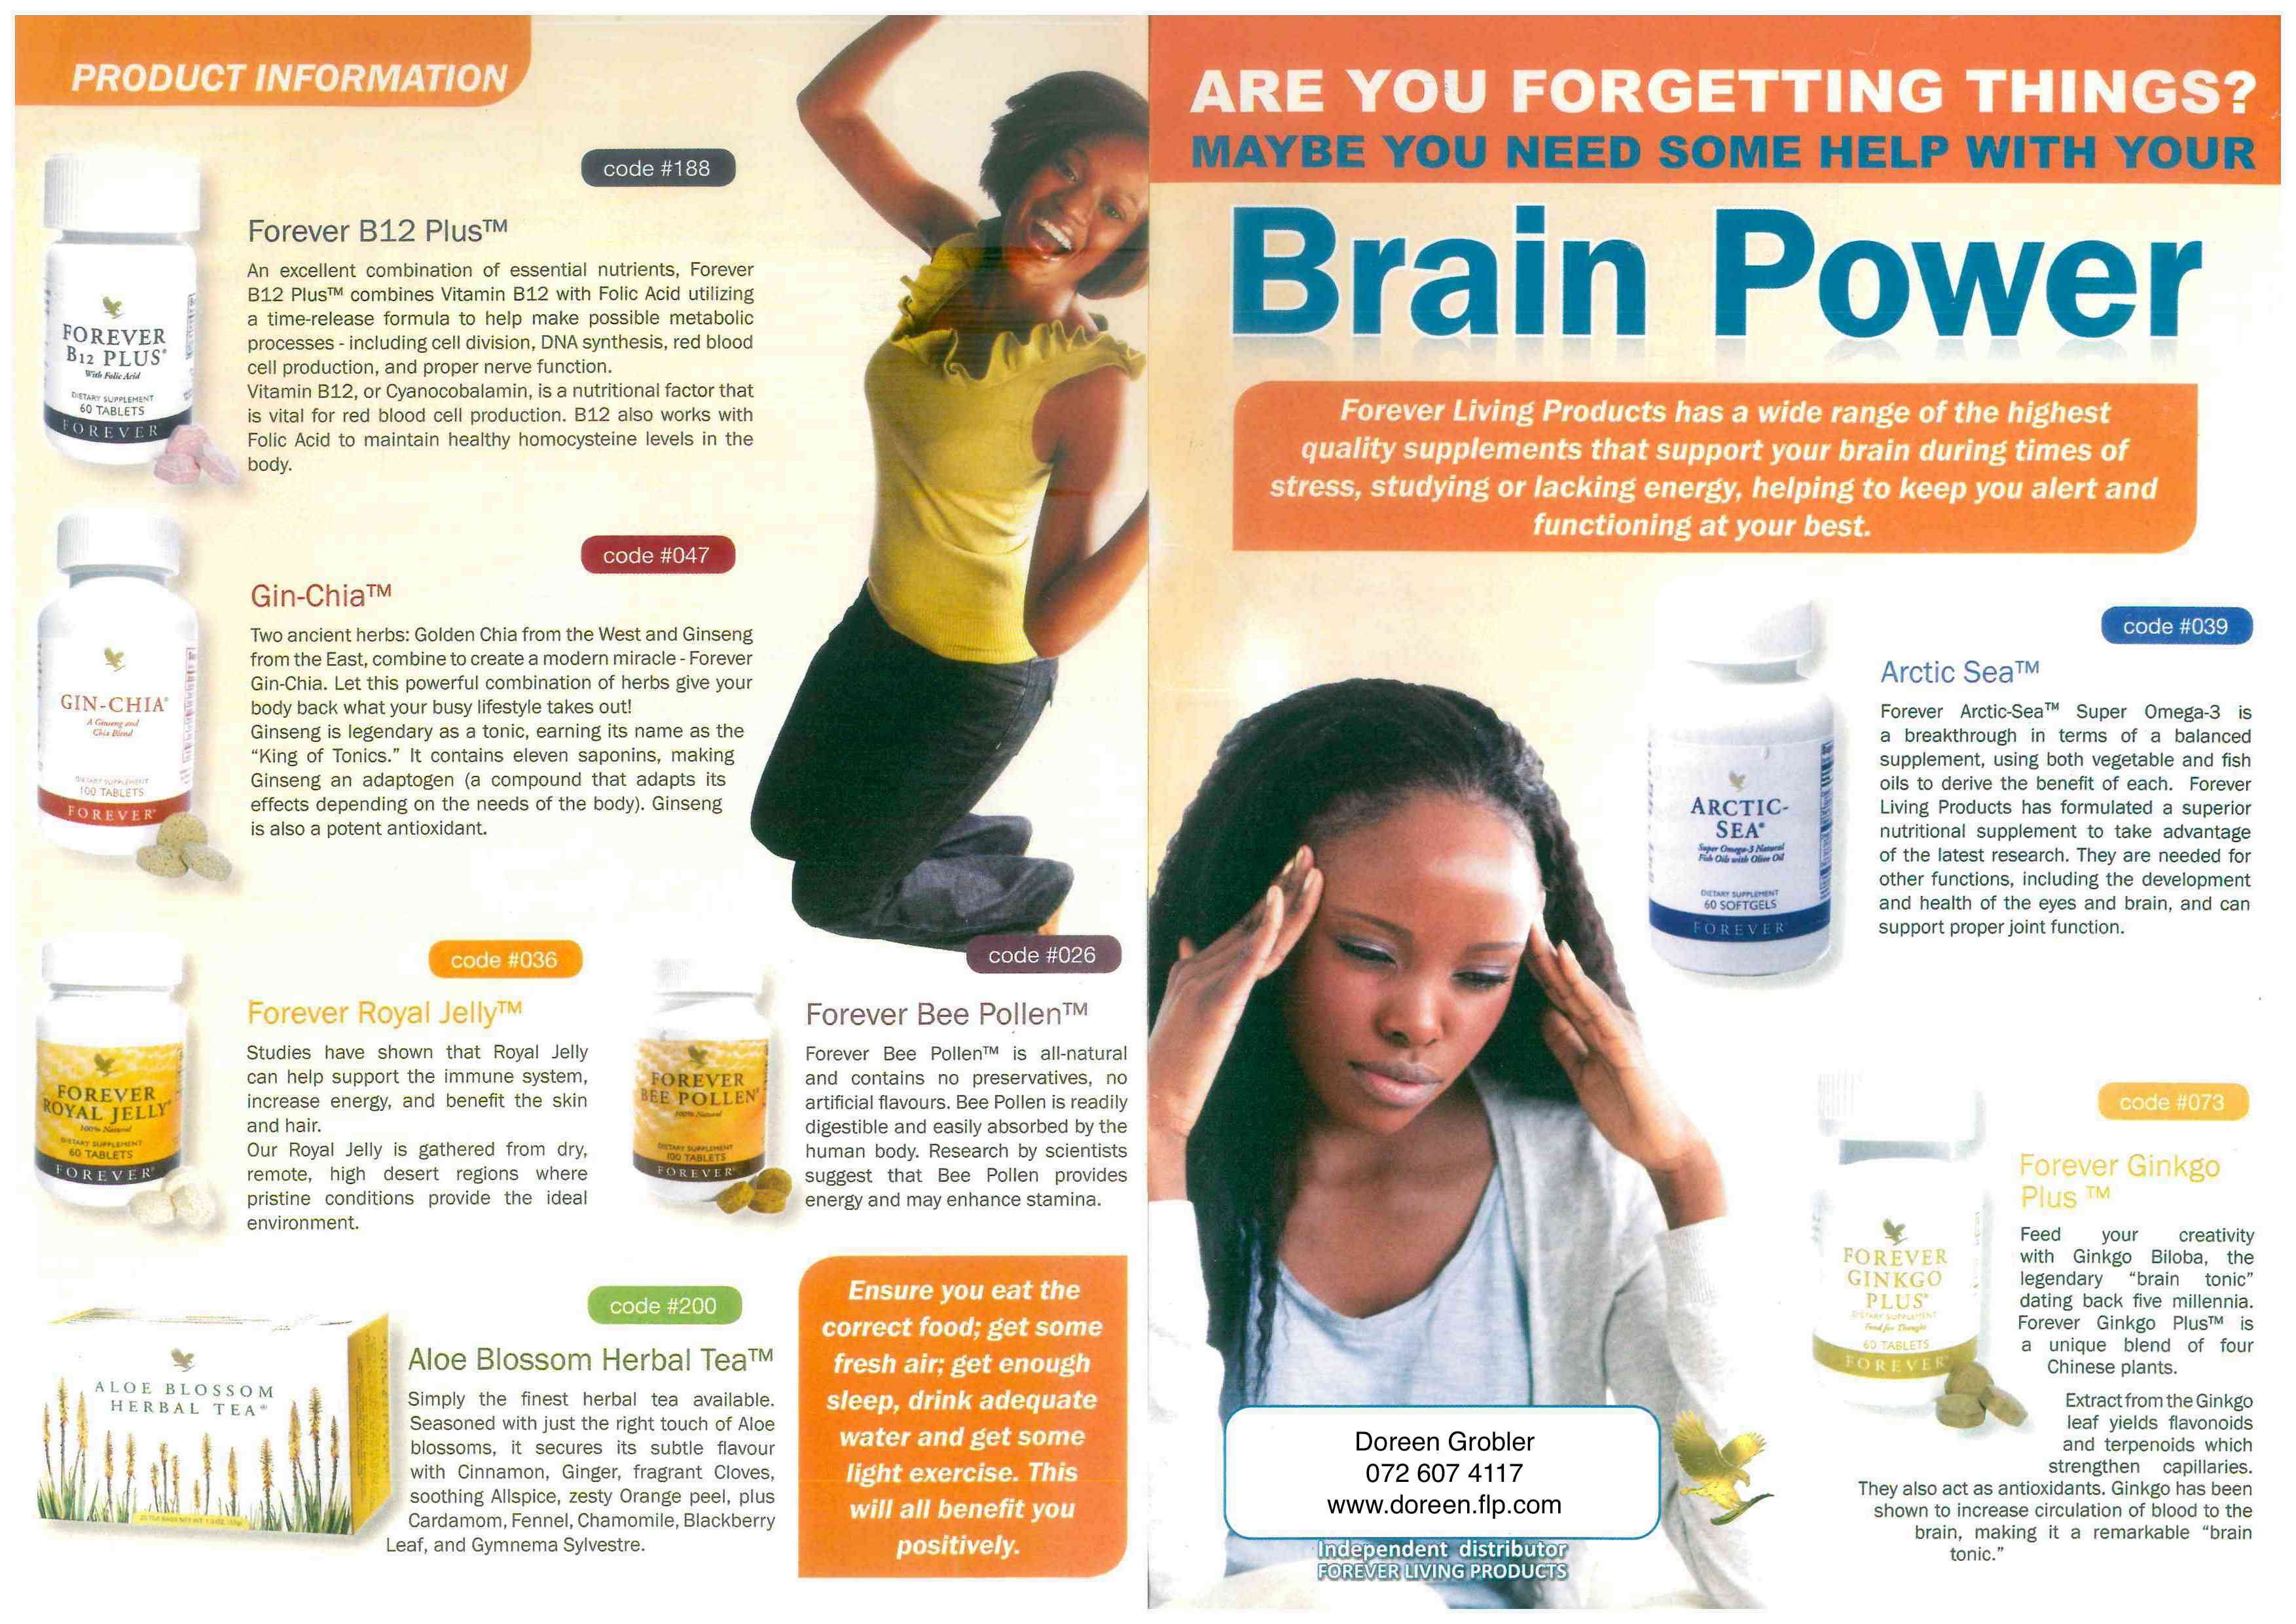 Ginkgo For Natural Brain Power Forgetting Things Lack Of Energy